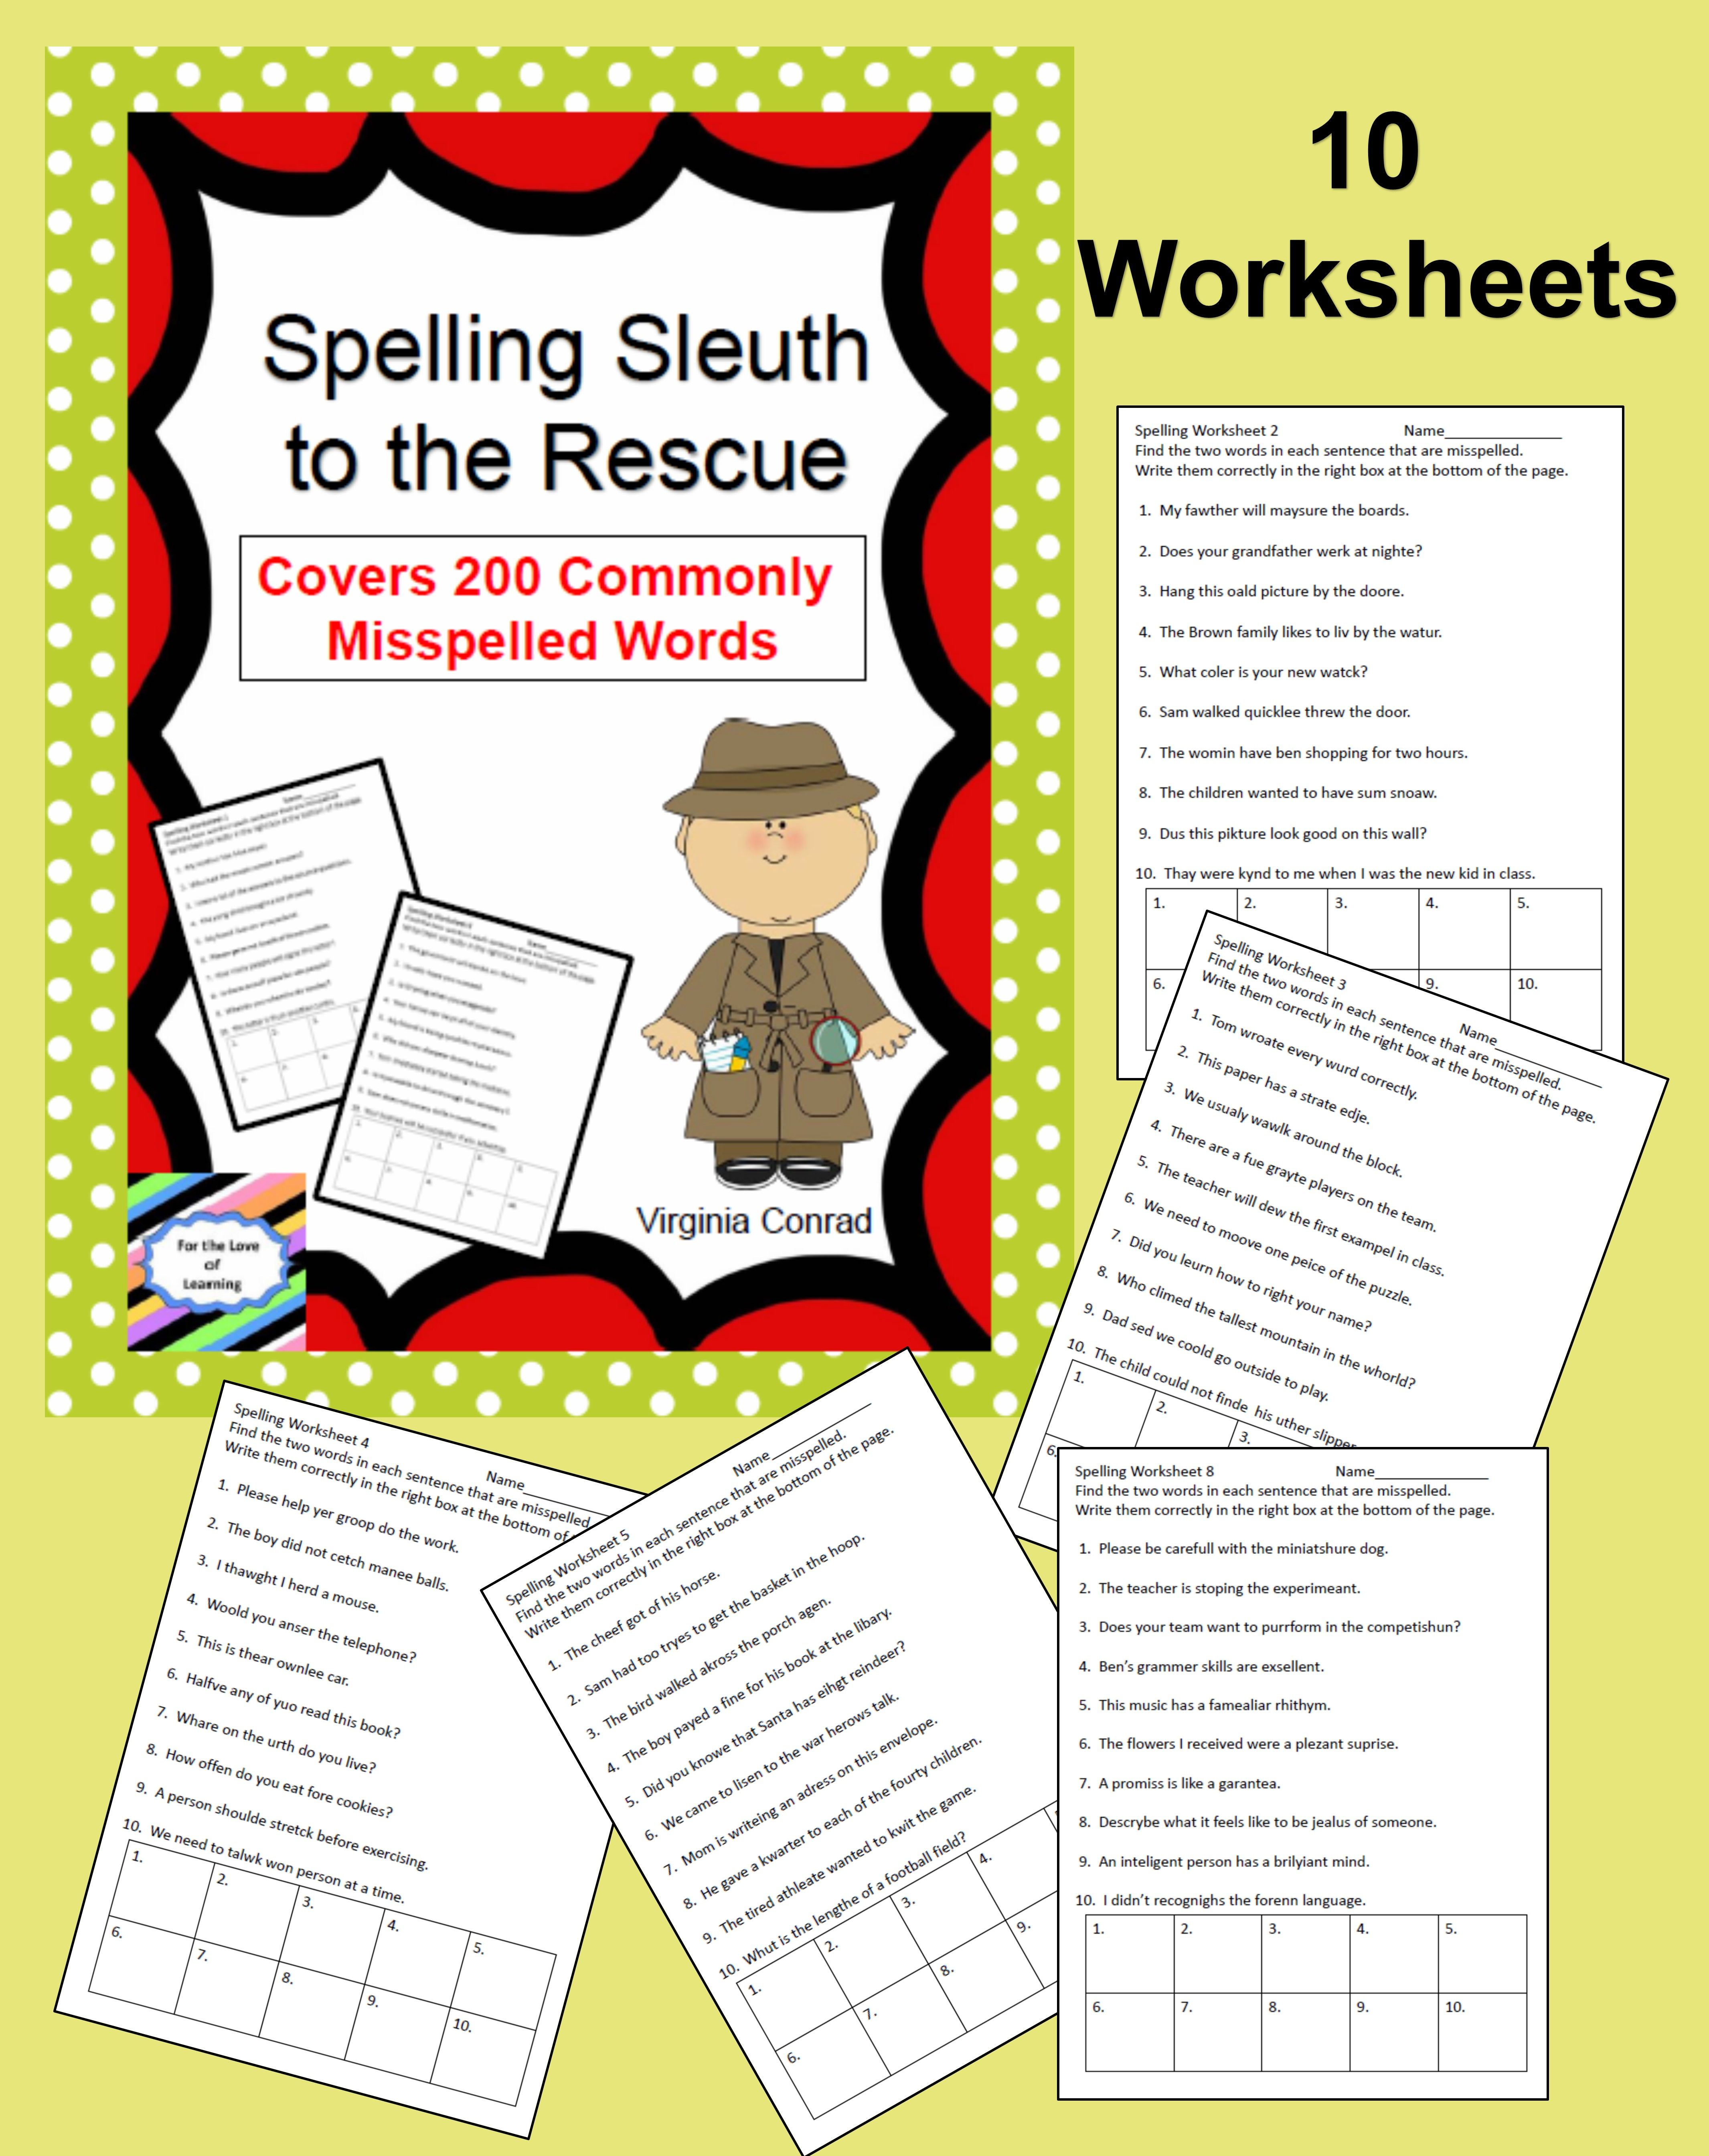 Spelling Focus On 200 Commonly Misspelled Words With